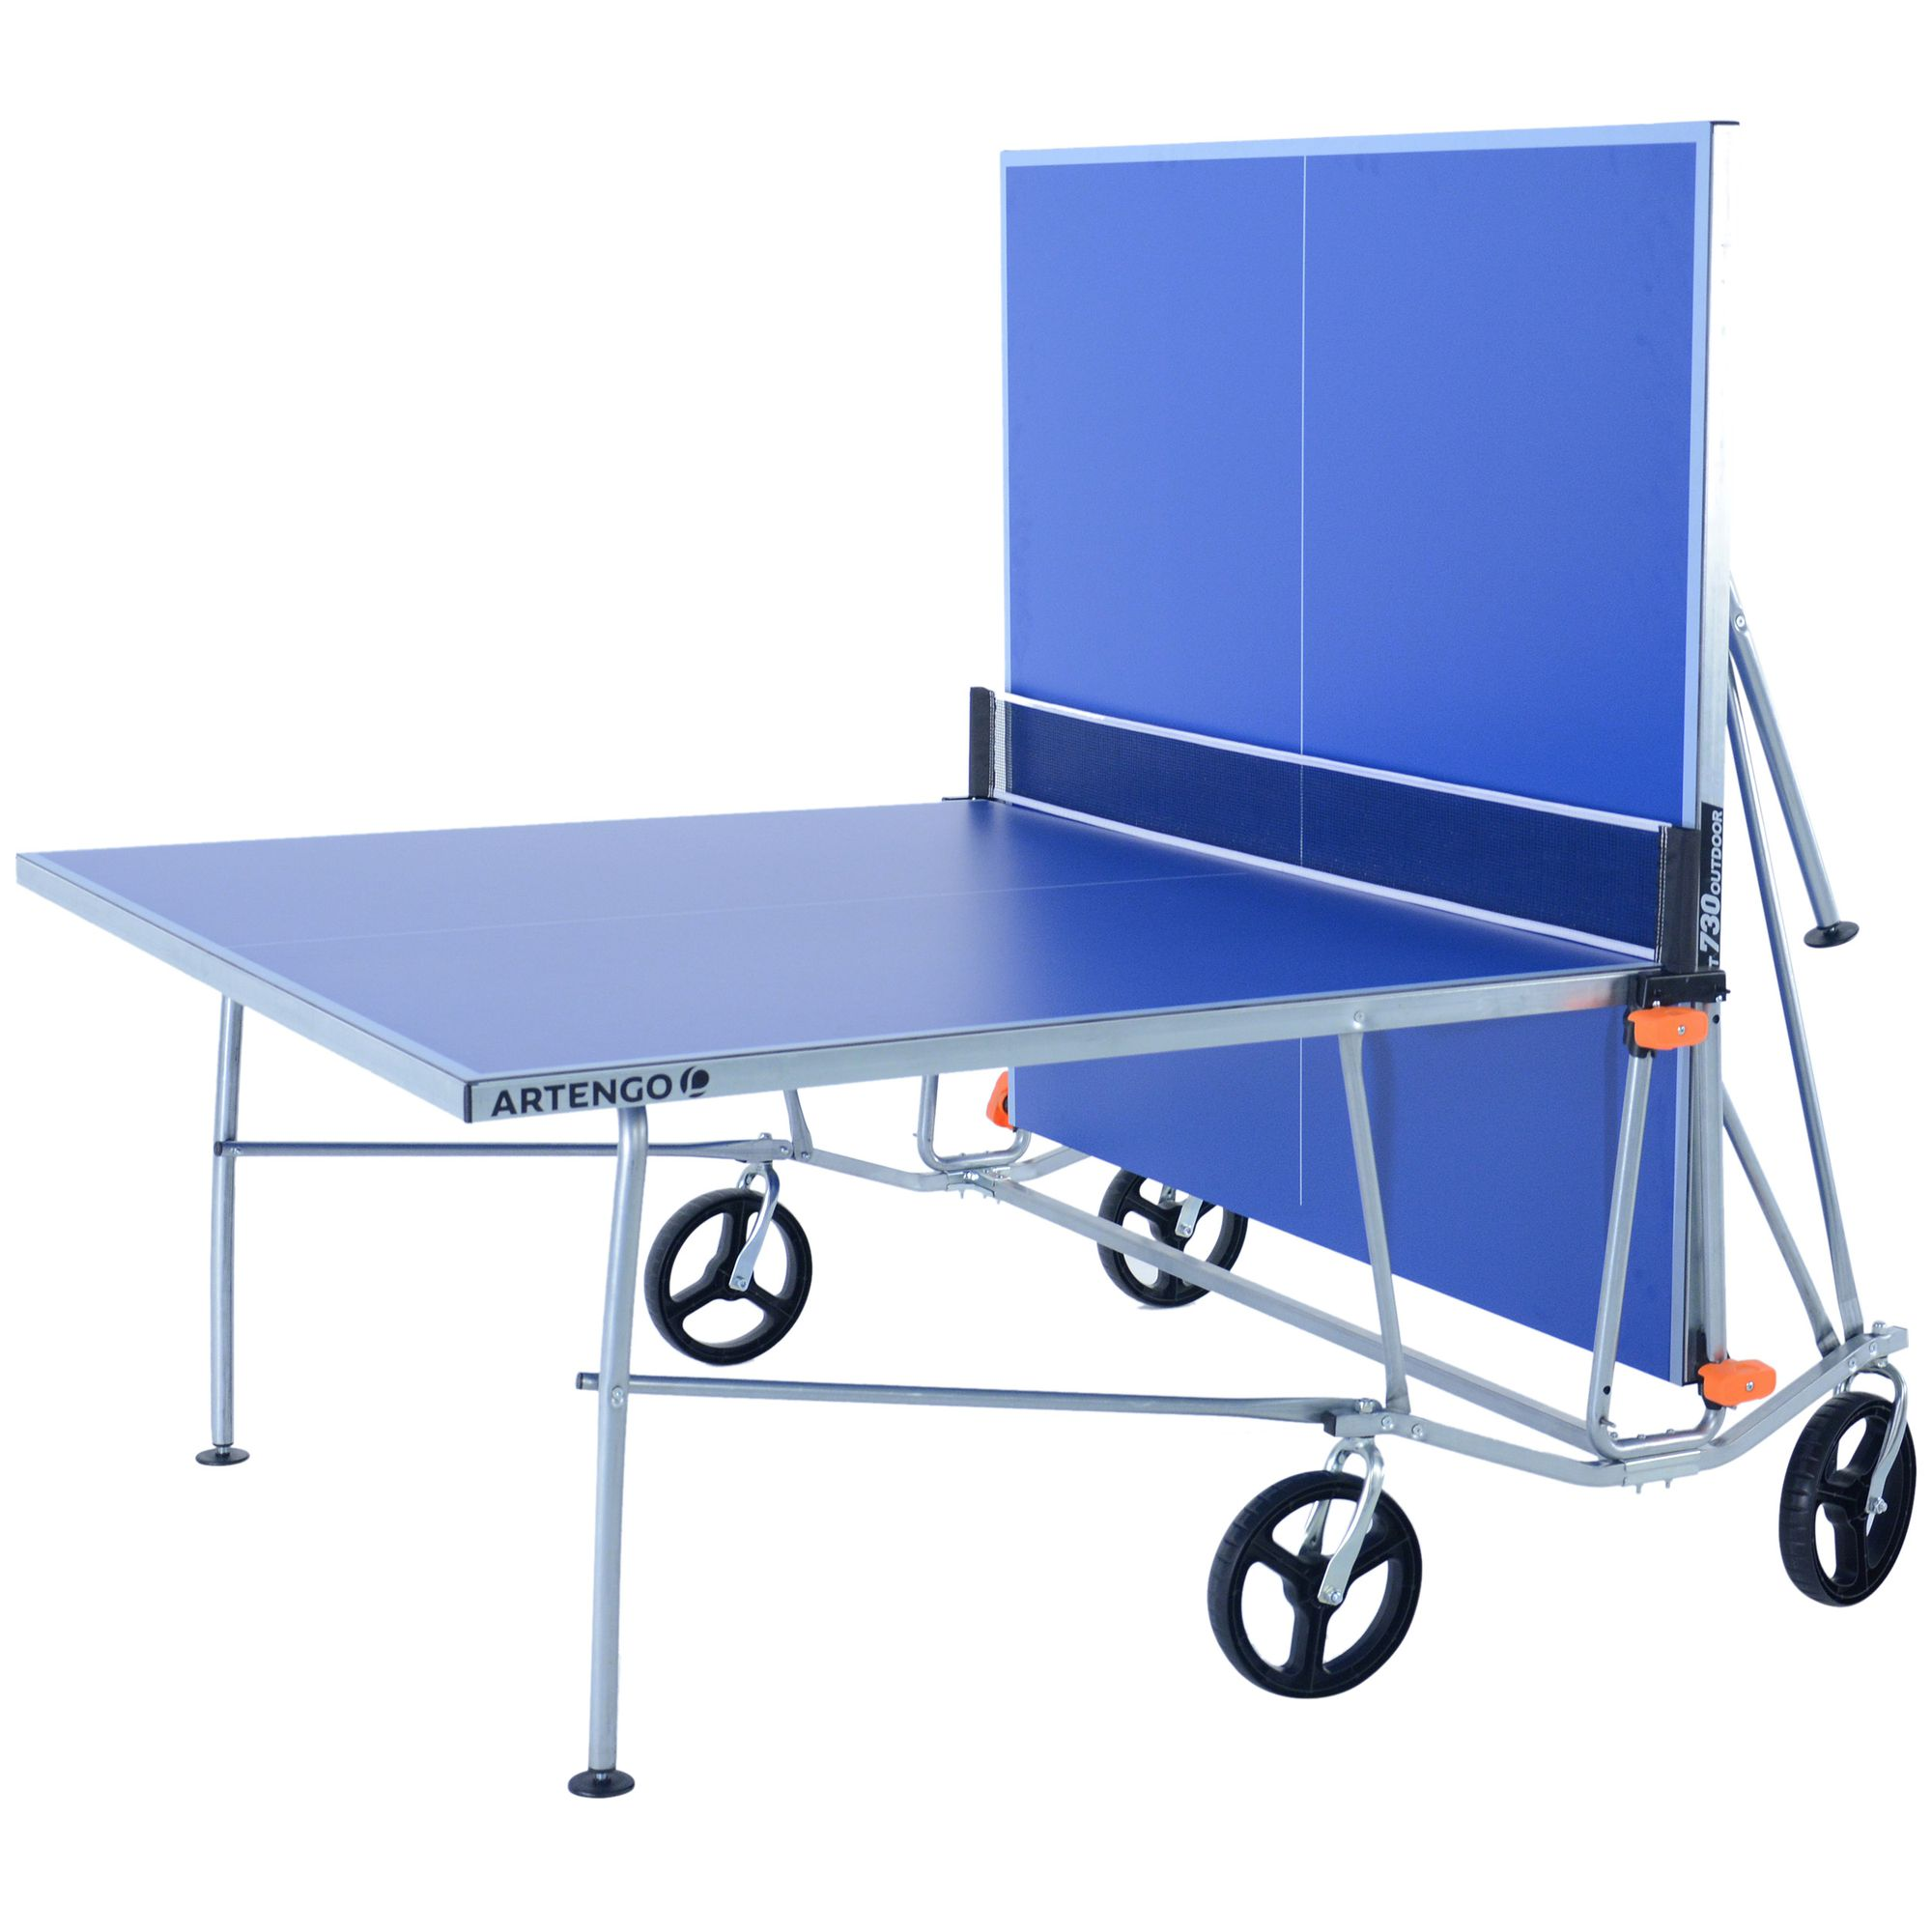 Table de free ping pong ft 730 ppt 500 outdoor clubs - Table ping pong decathlon outdoor 500 ...